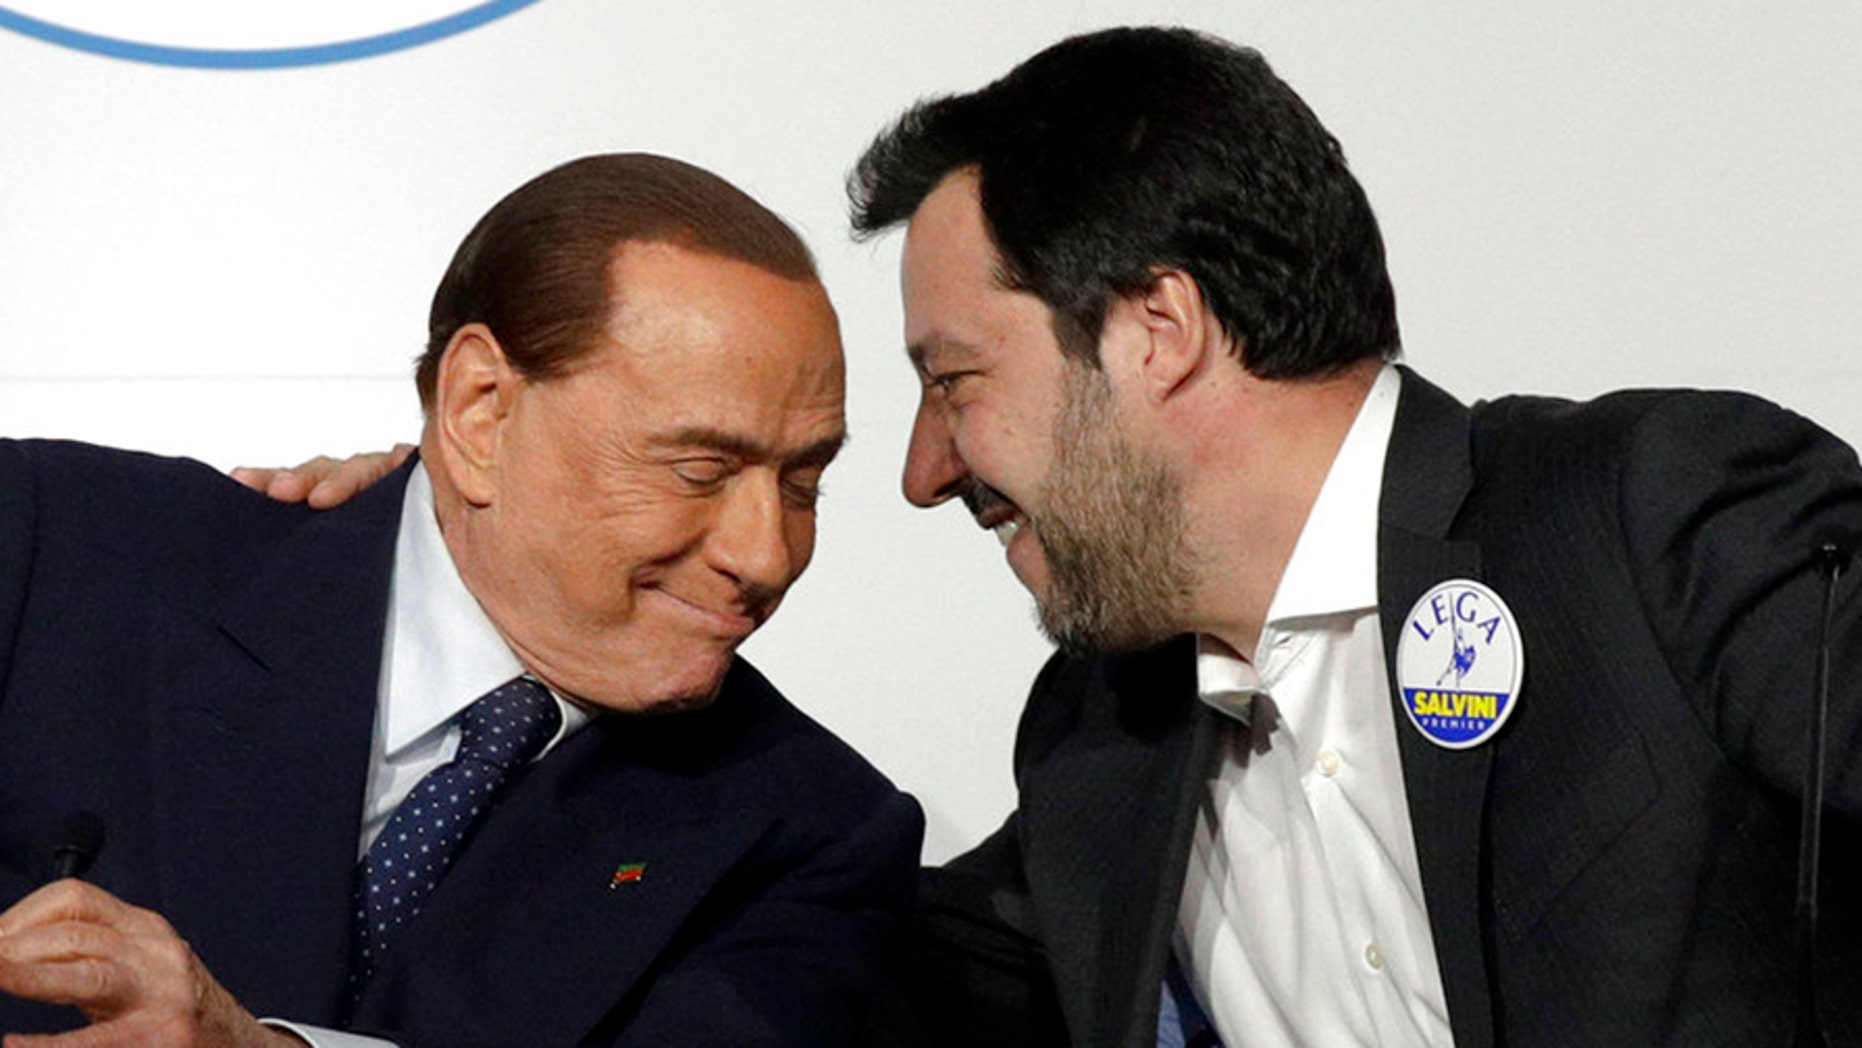 Silvio Berlusconi, left, and his Forza Italia party could enter into coalition with the League and Matteo Salvini, right.